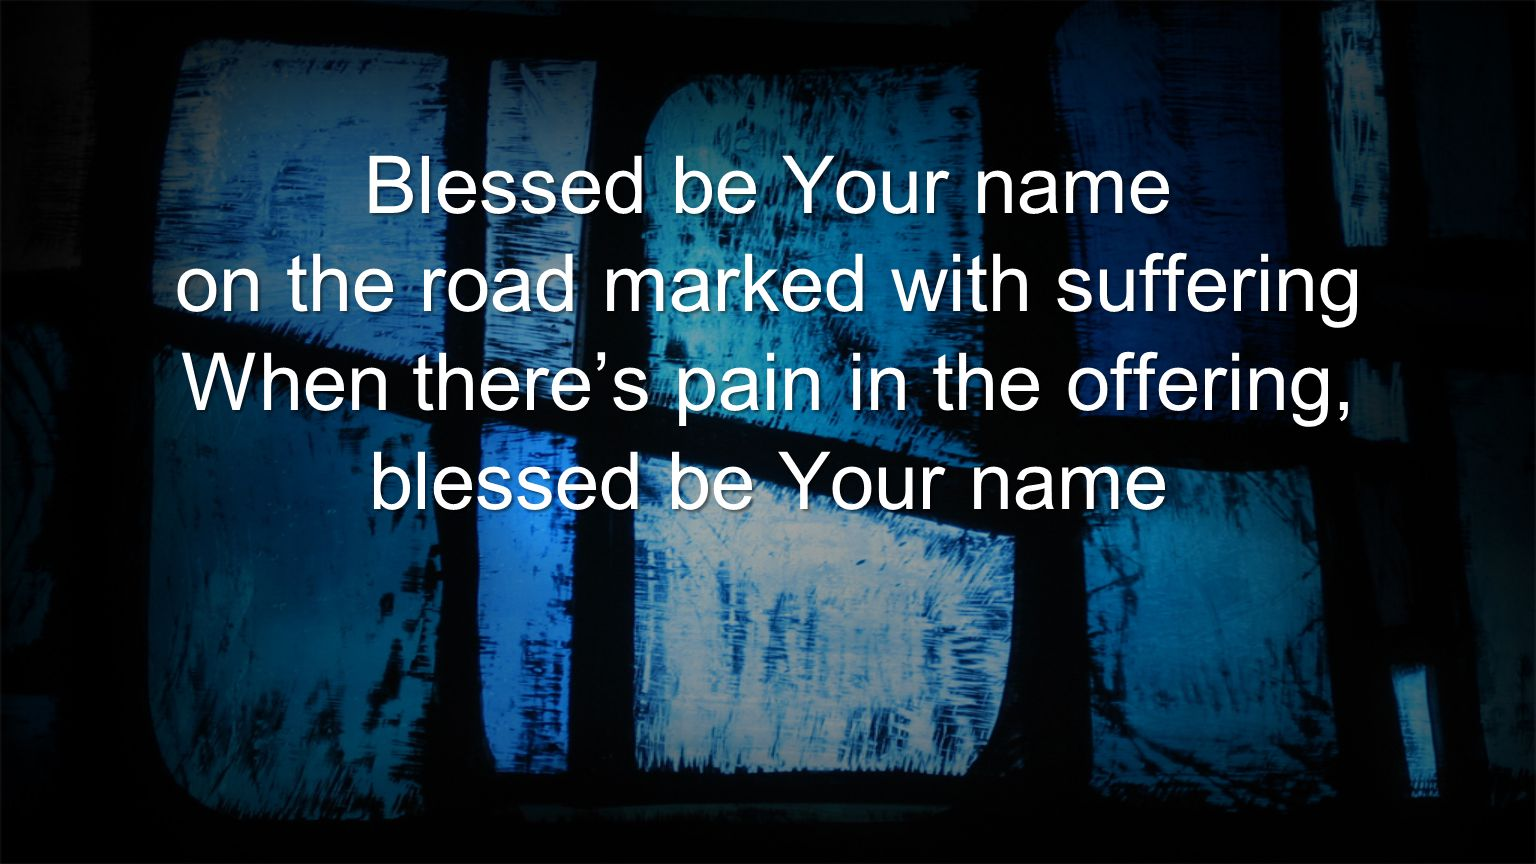 on the road marked with suffering When there's pain in the offering,